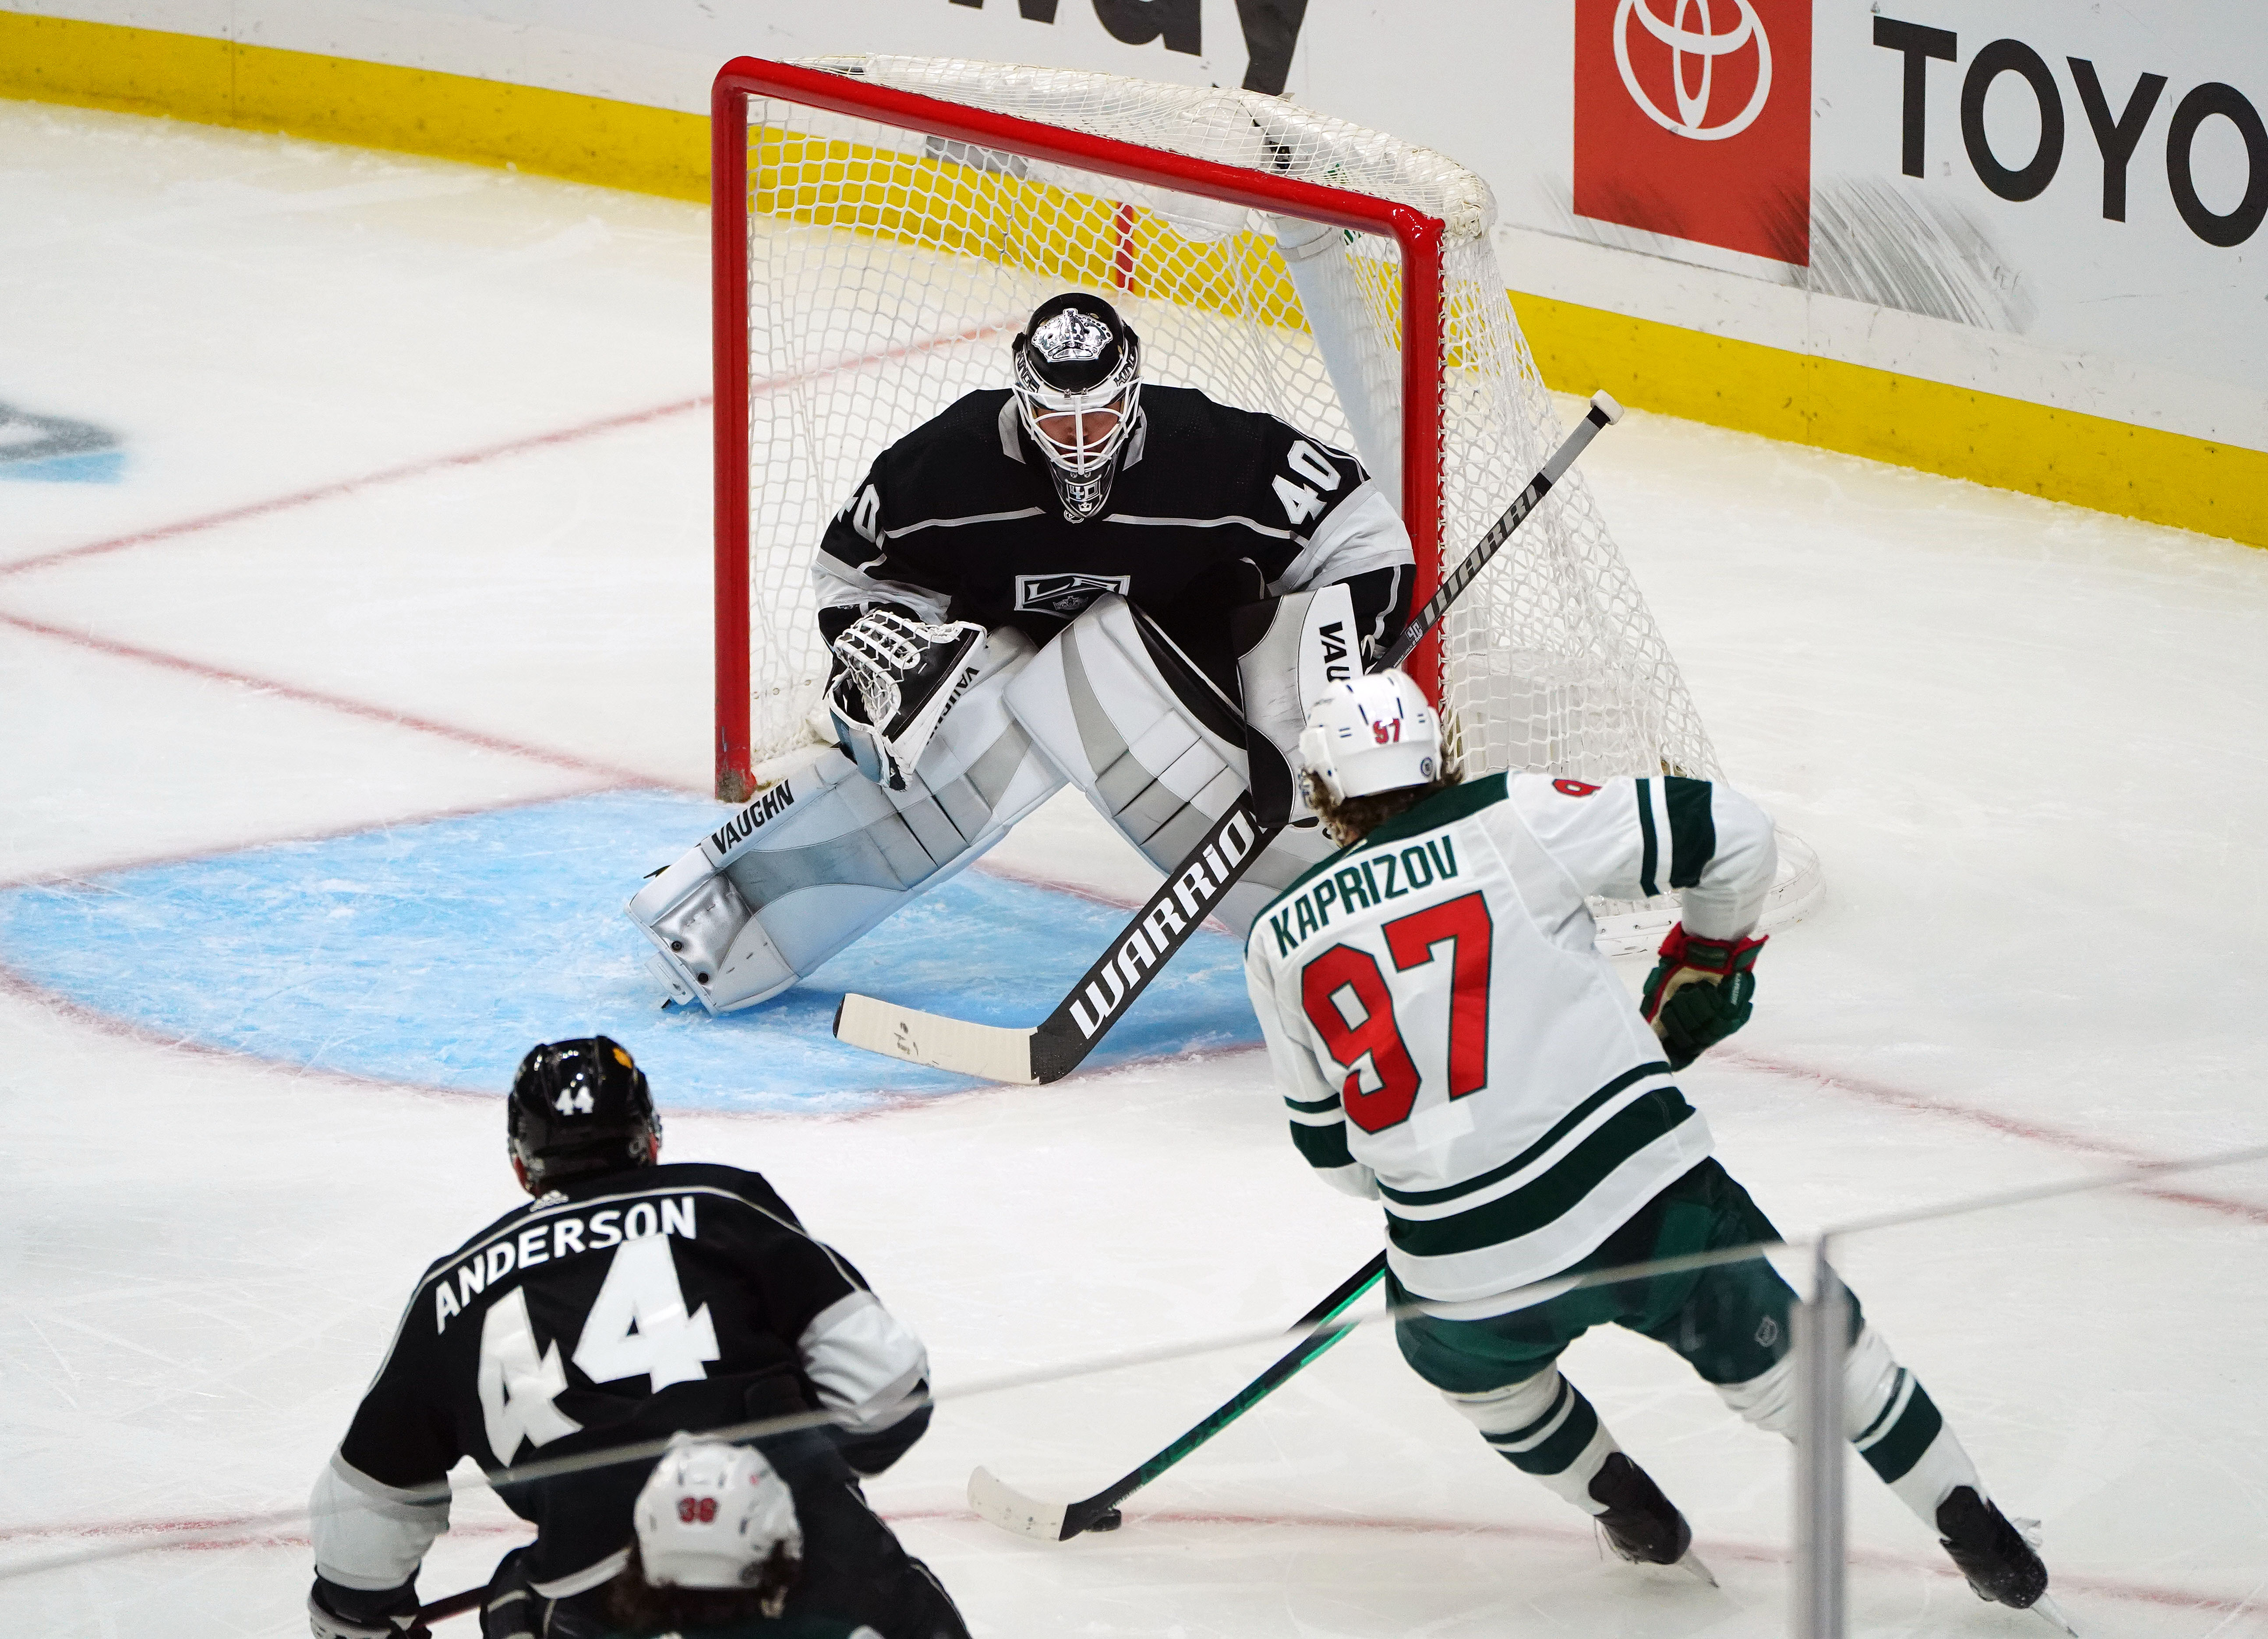 Kaprizov Strikes Twice as Wild Win 4-2 Over Los Angeles